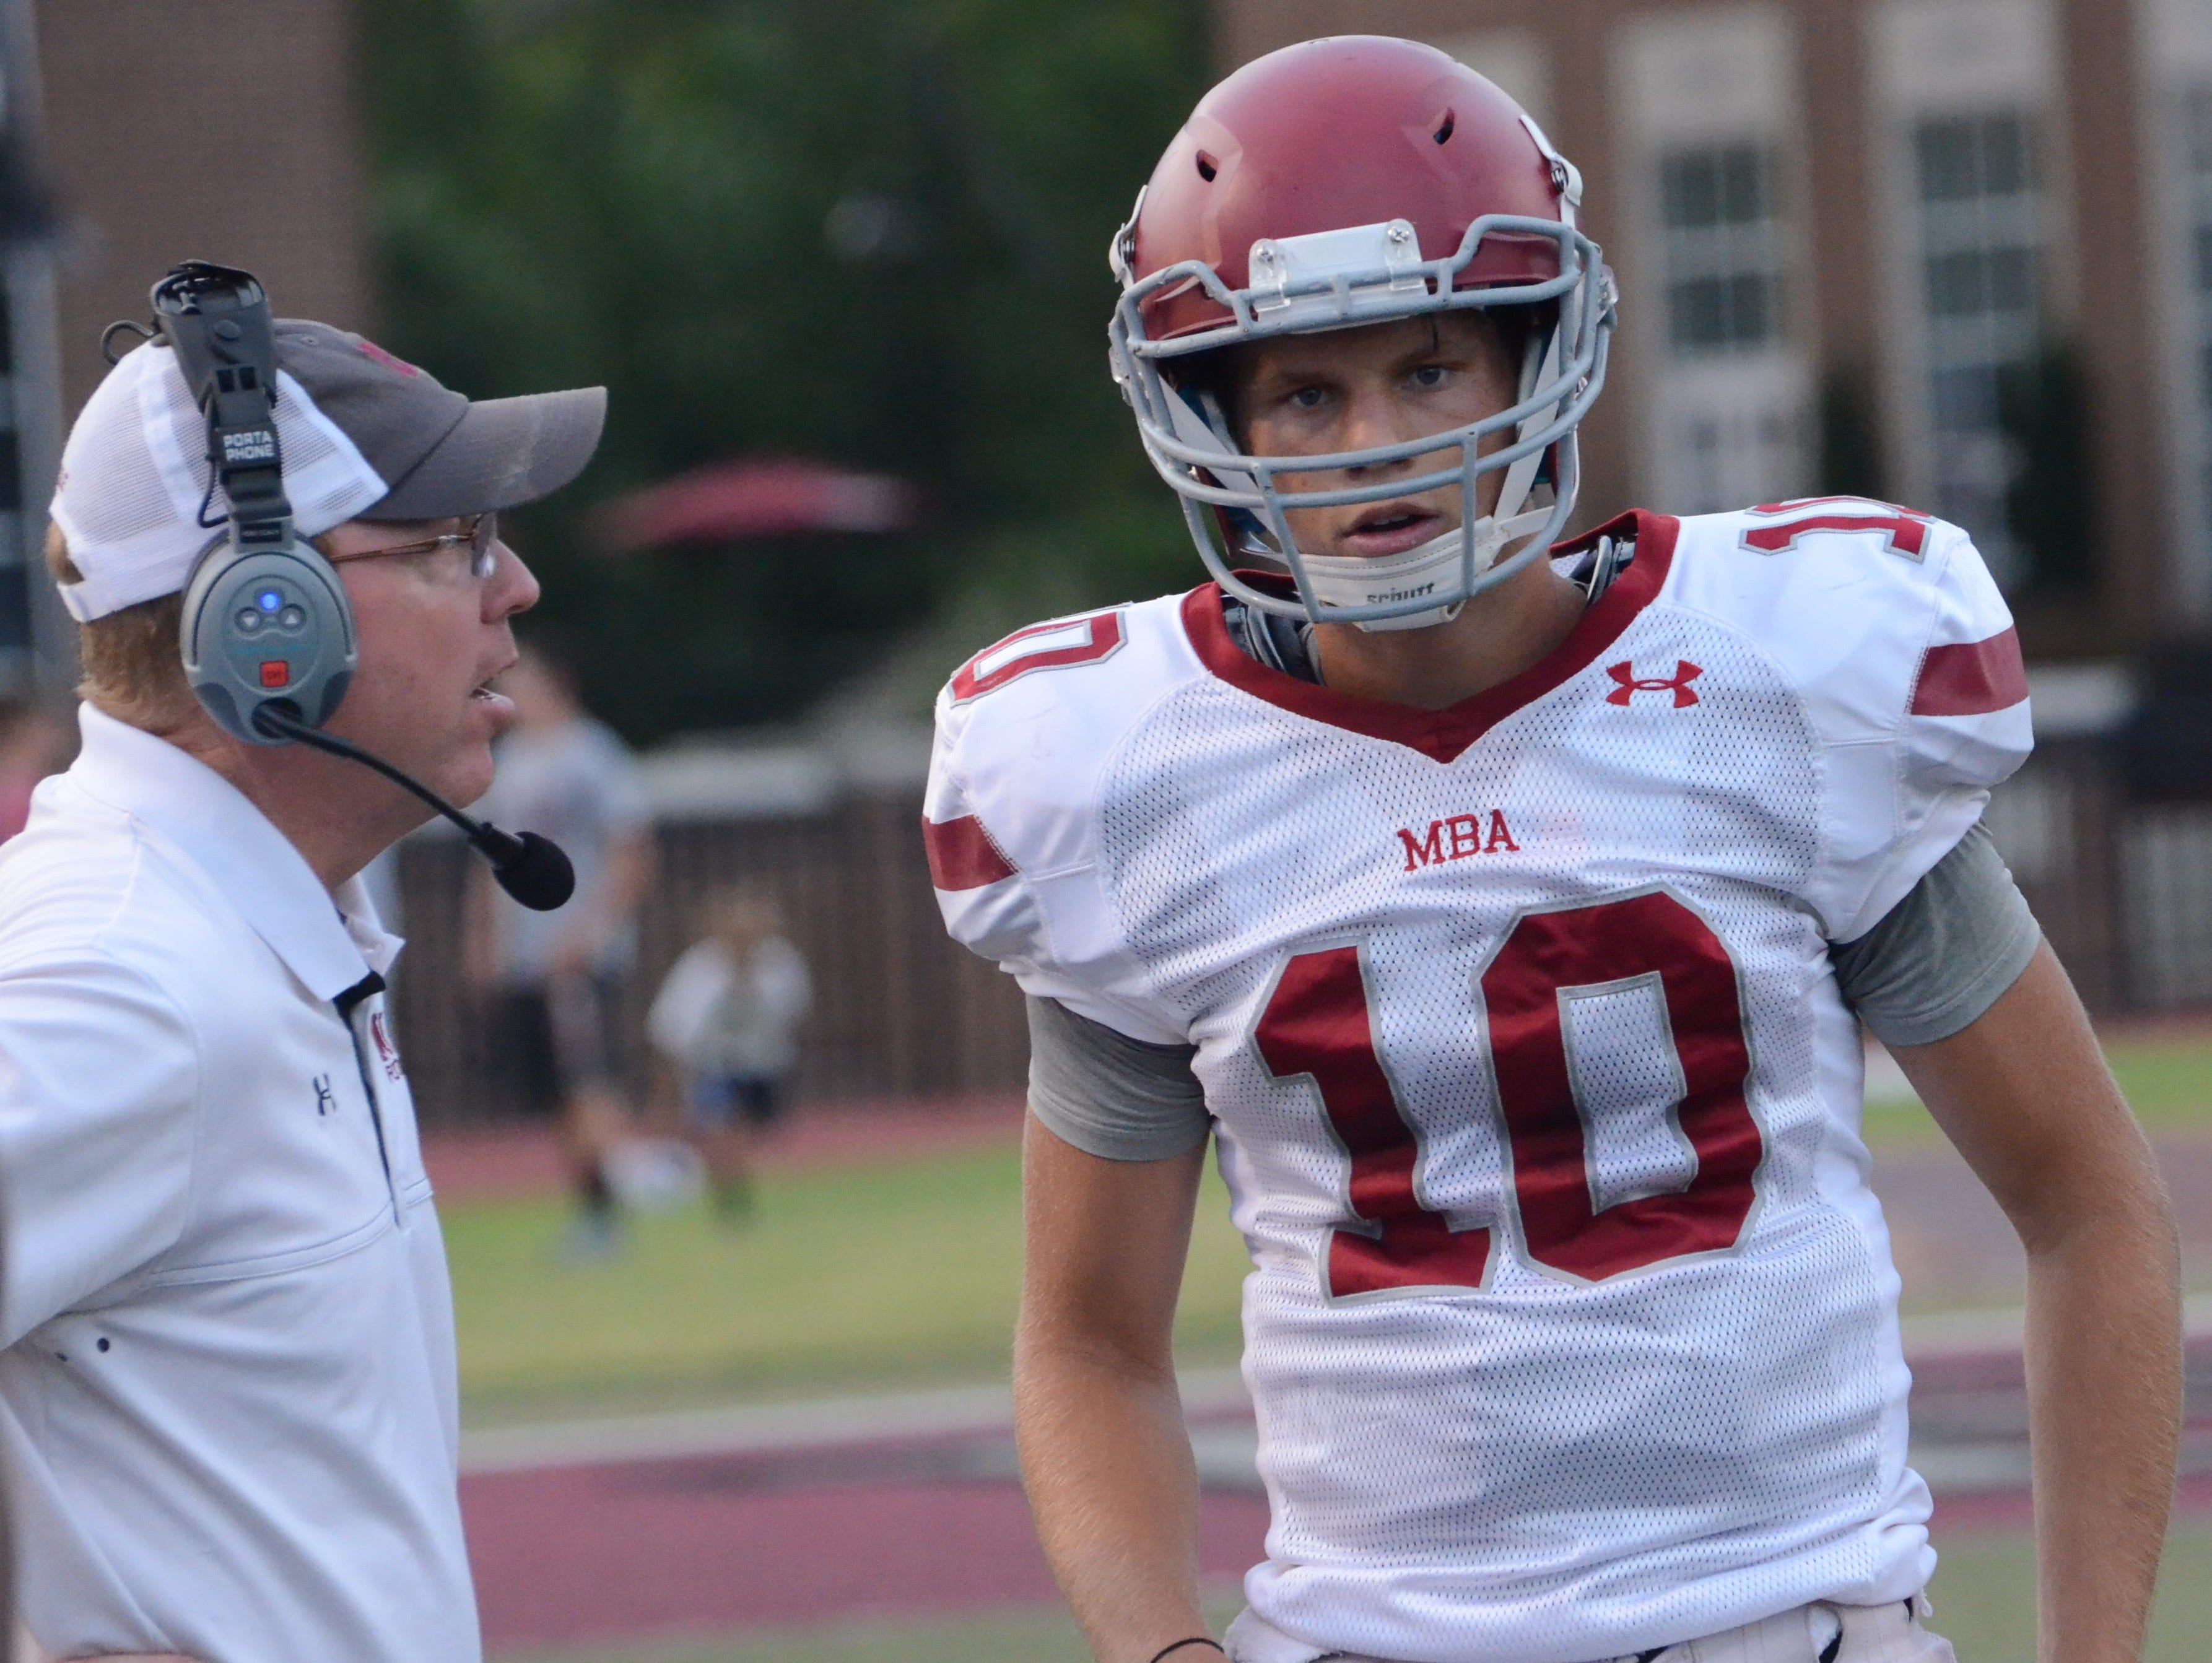 MBA quarterback Glenn Coleman get some words of advice from head coach Marty Euverard at a recent scrimmage.